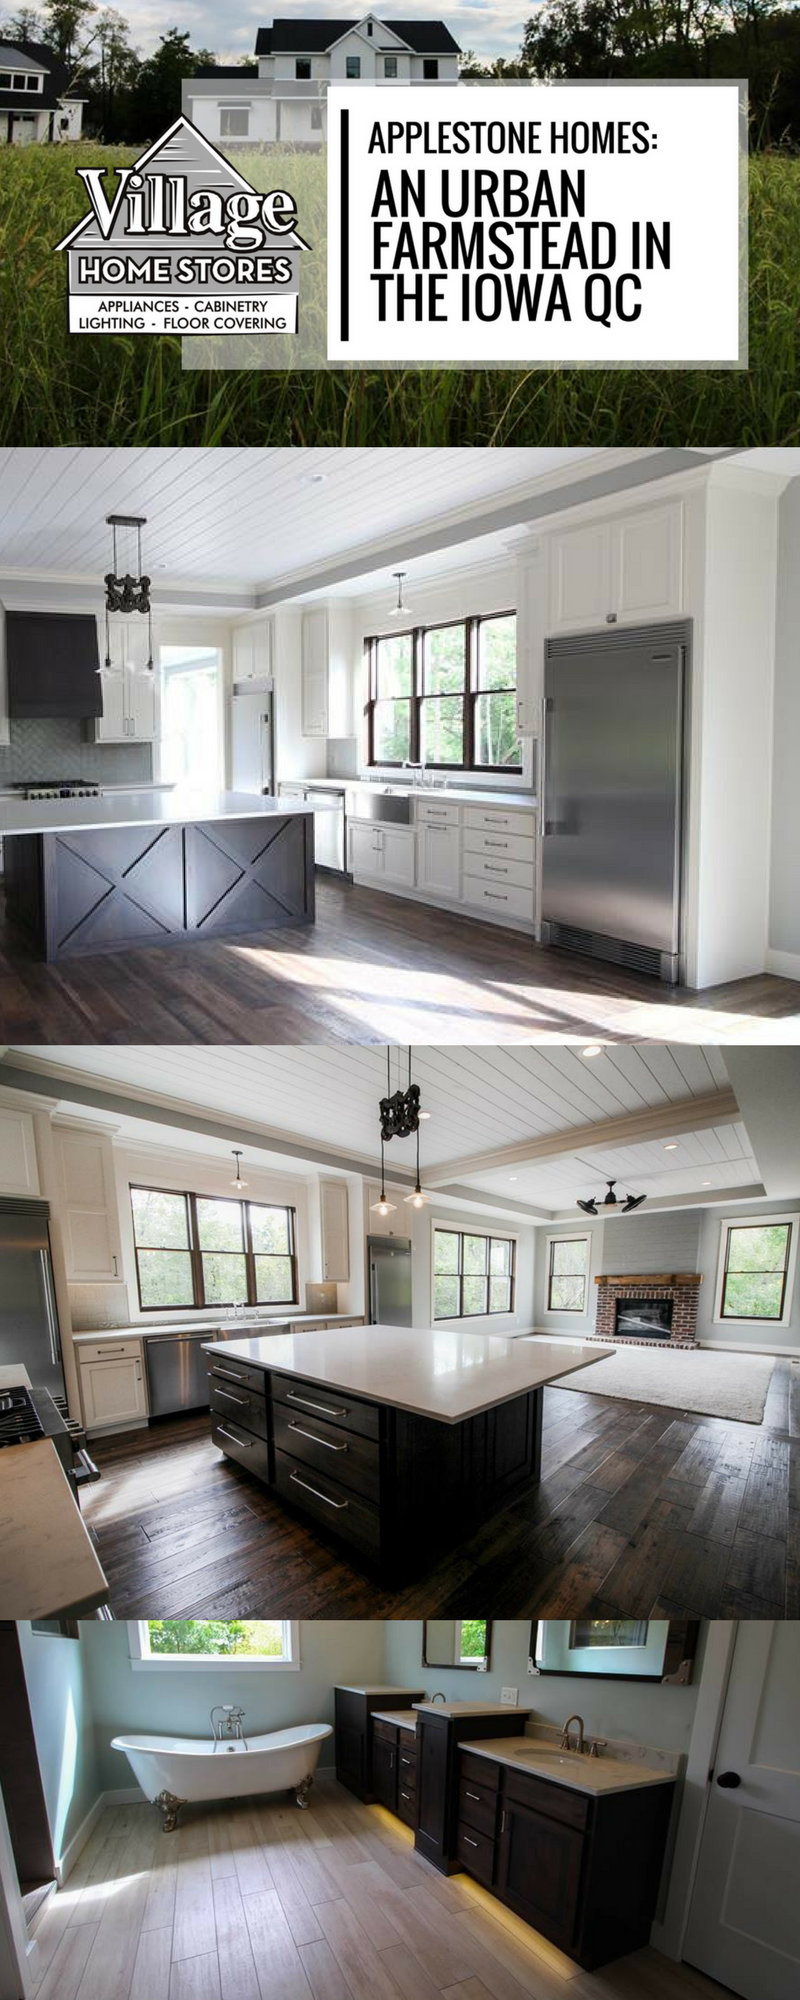 Modern Farmhouse Kitchen Perfection In This Urban Frmstead Built By Applestone Homes Cabinetry Village